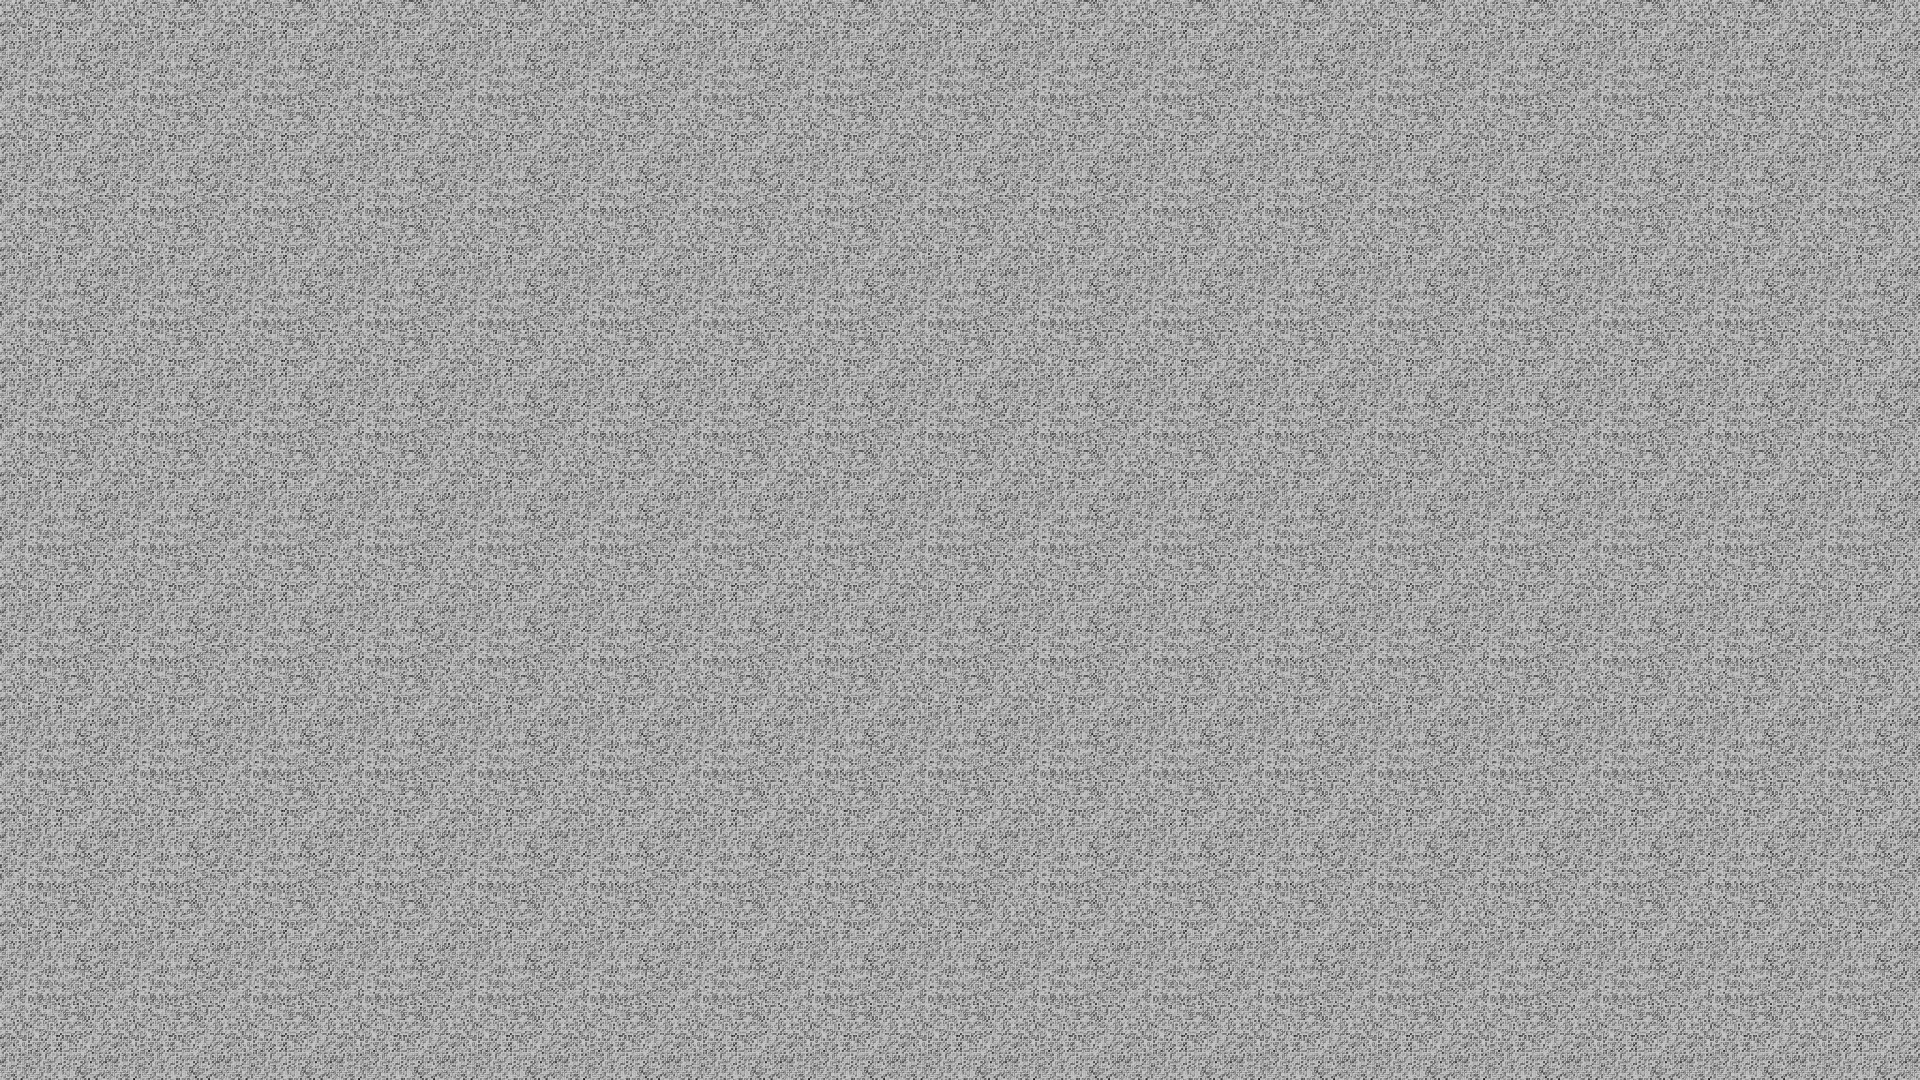 Gray Background Free Stock Photo  Public Domain Pictures